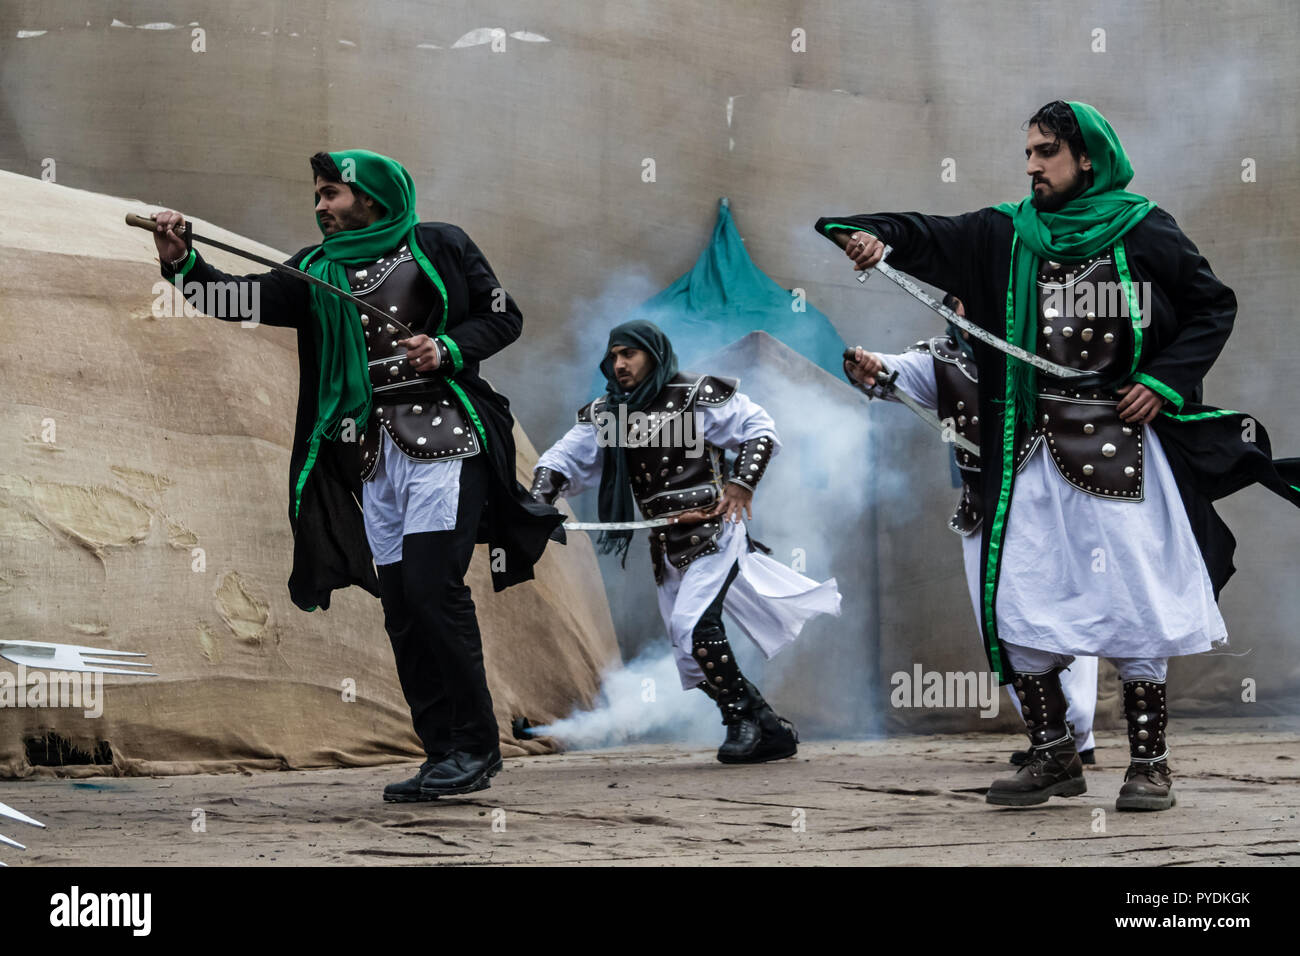 ISTANBUL / TURKEY - NOV 24, 2012: Shiite muslims stage the battle of Karbala - Stock Image